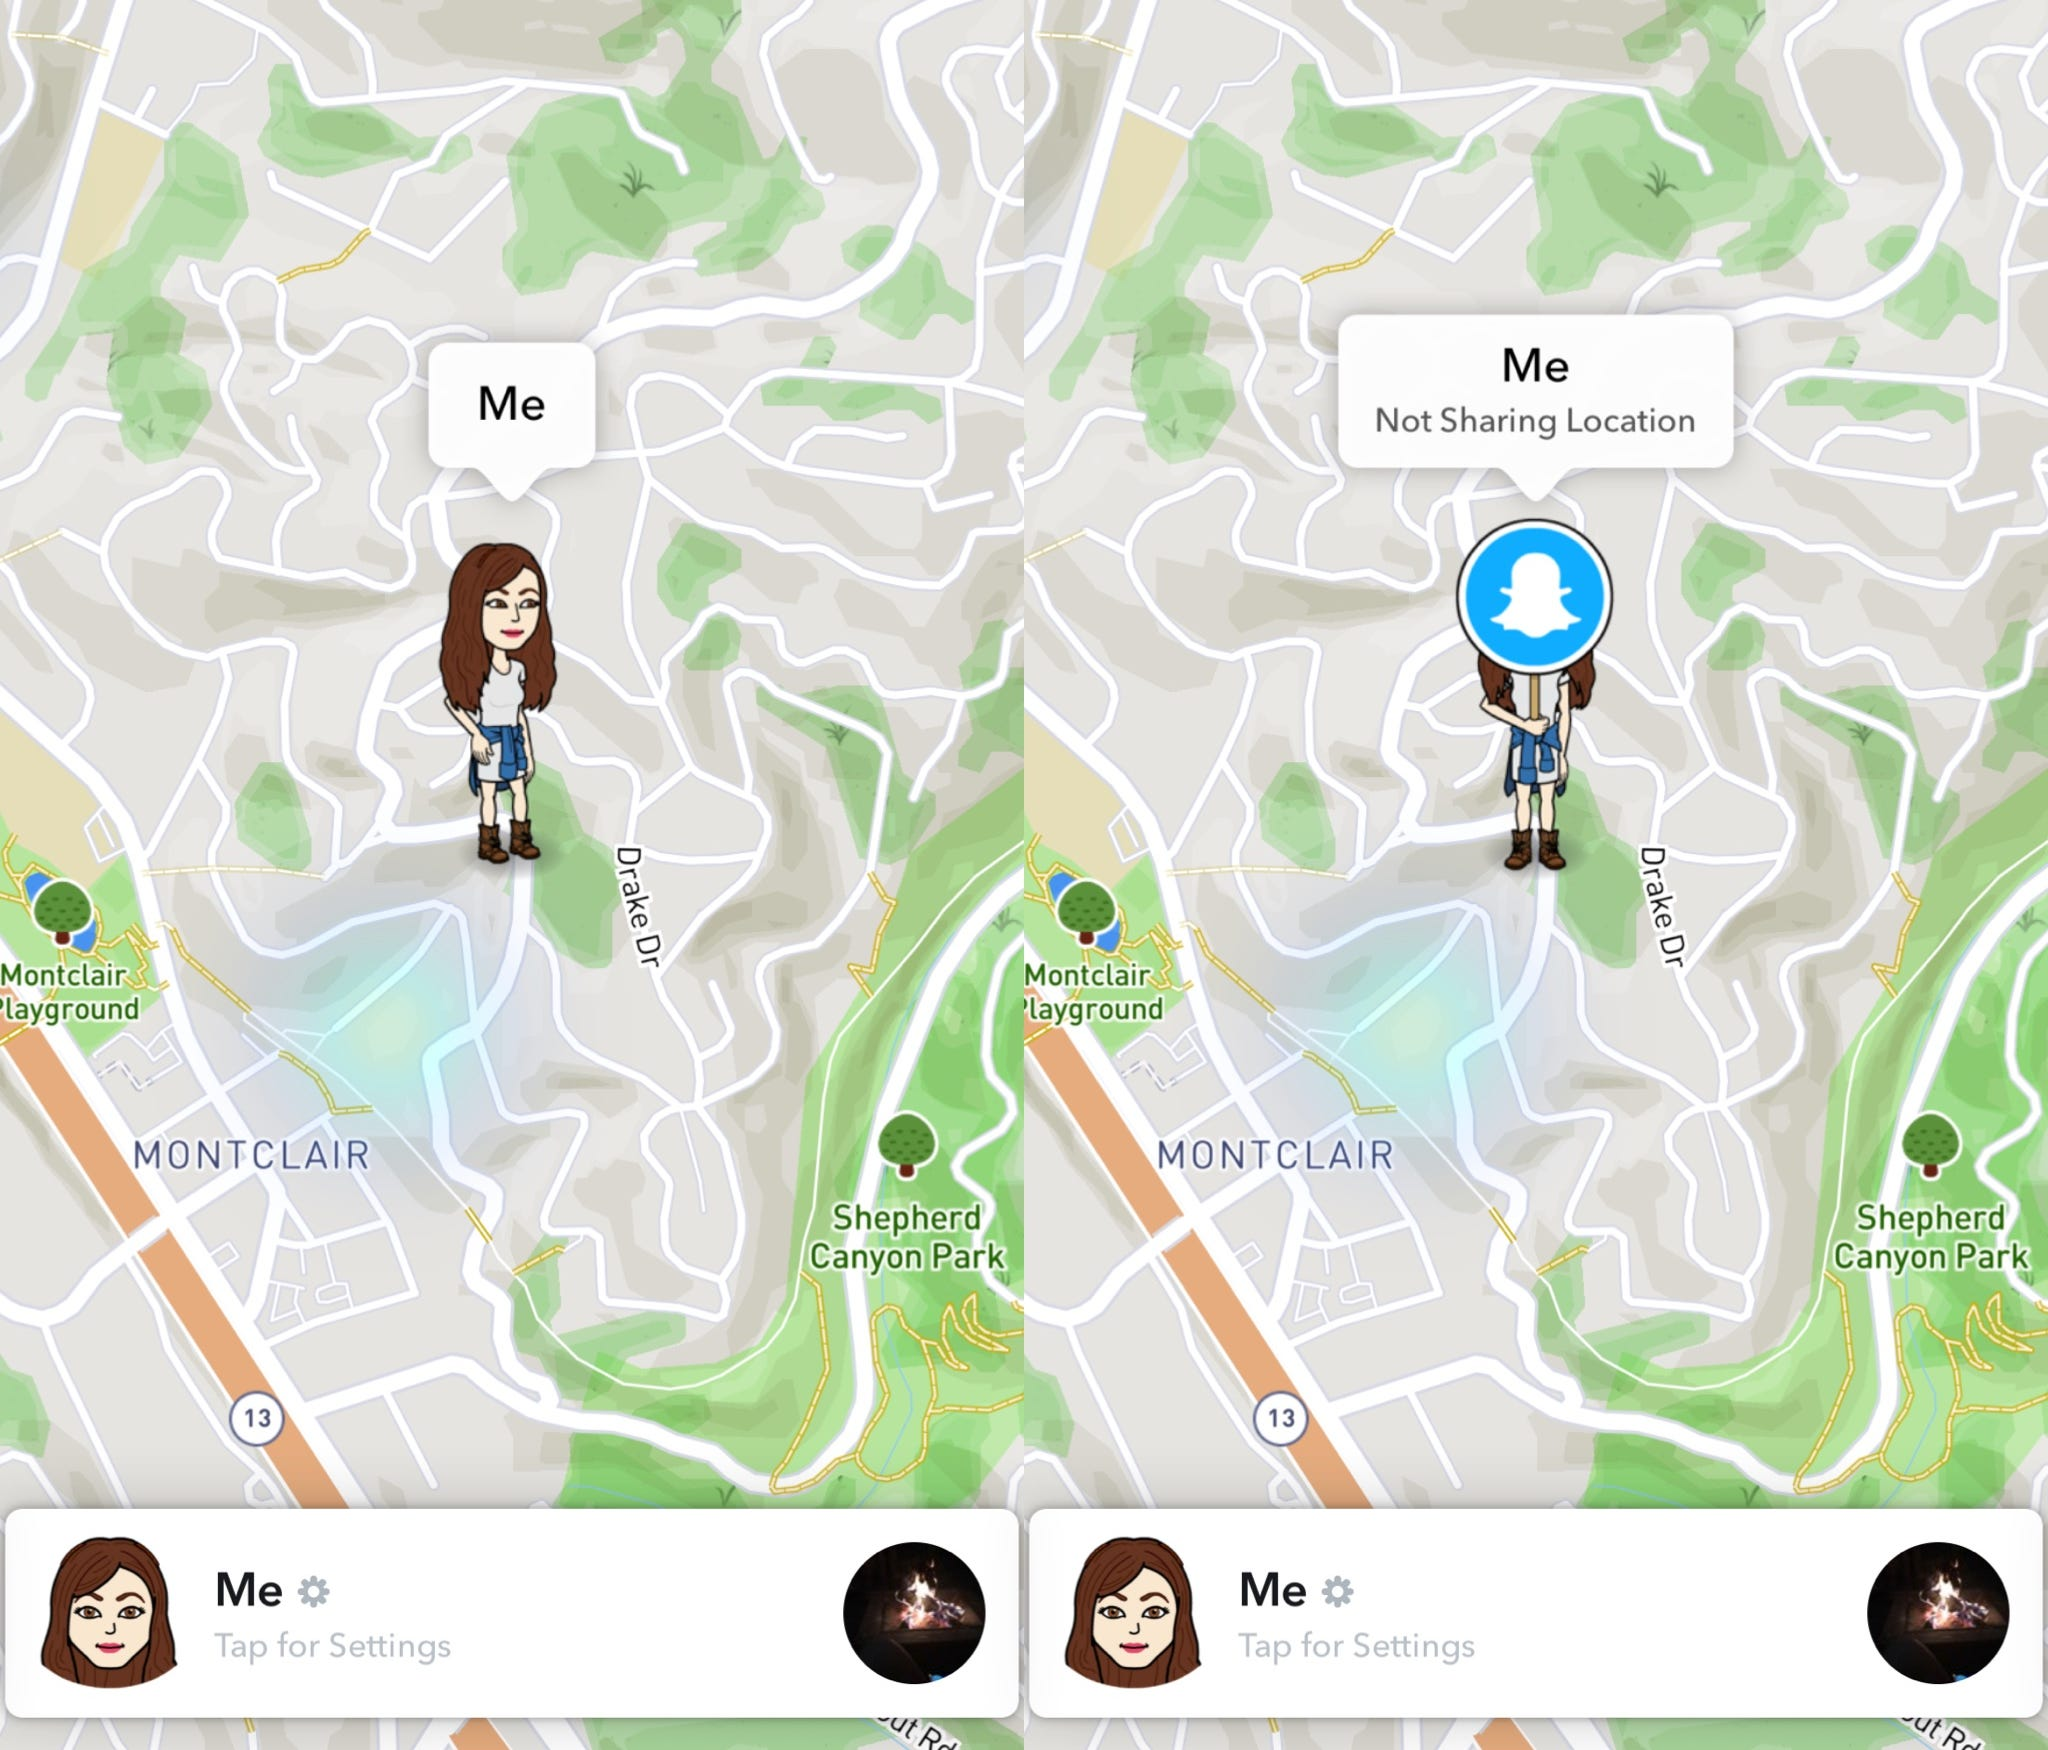 Snapchat's Snap Map enabled to the left, and with Ghost Mode on the right